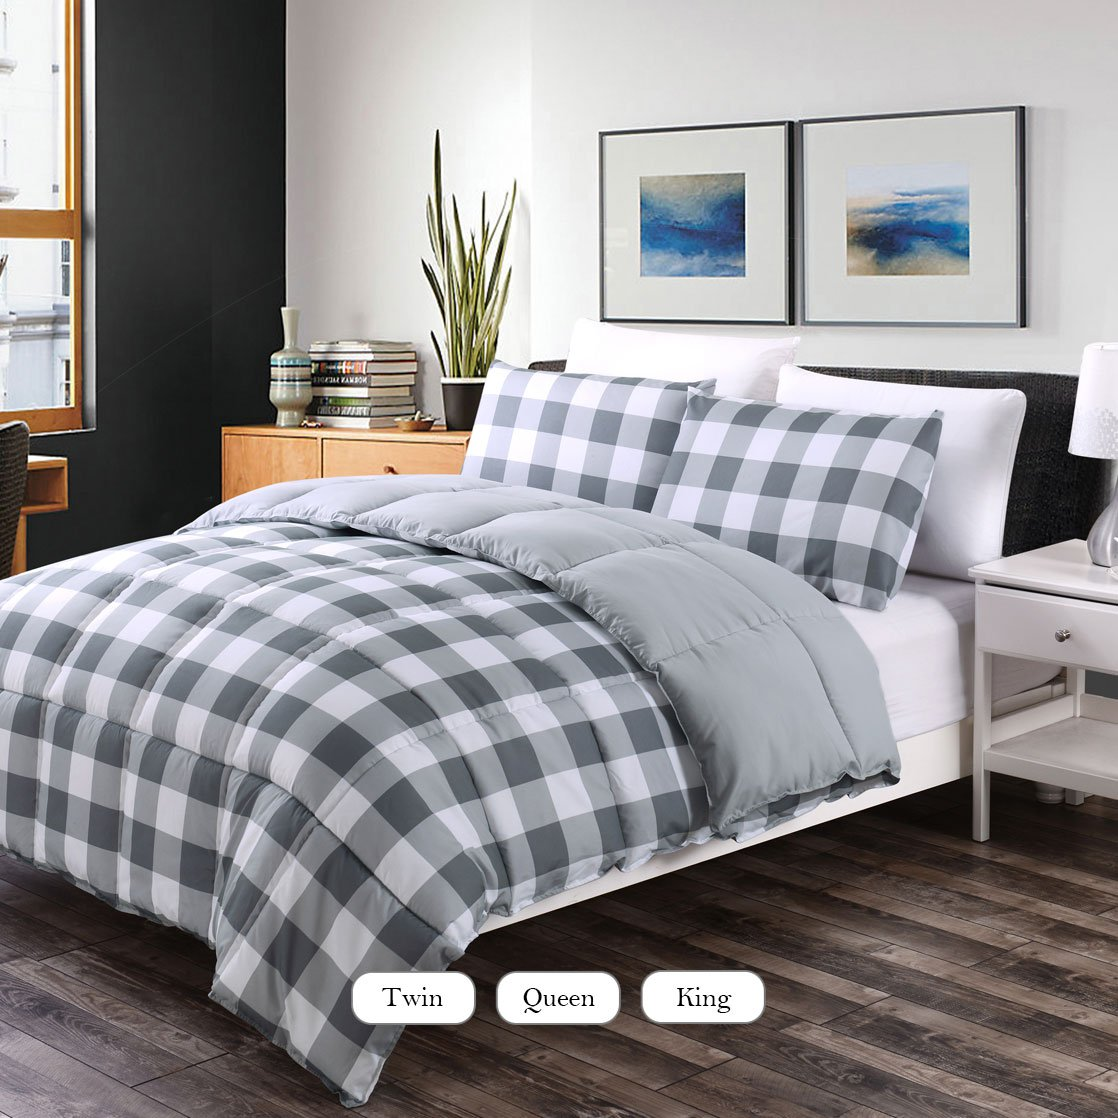 black covers uncategorized ikea gingham within inspiring and red cover duvet white on